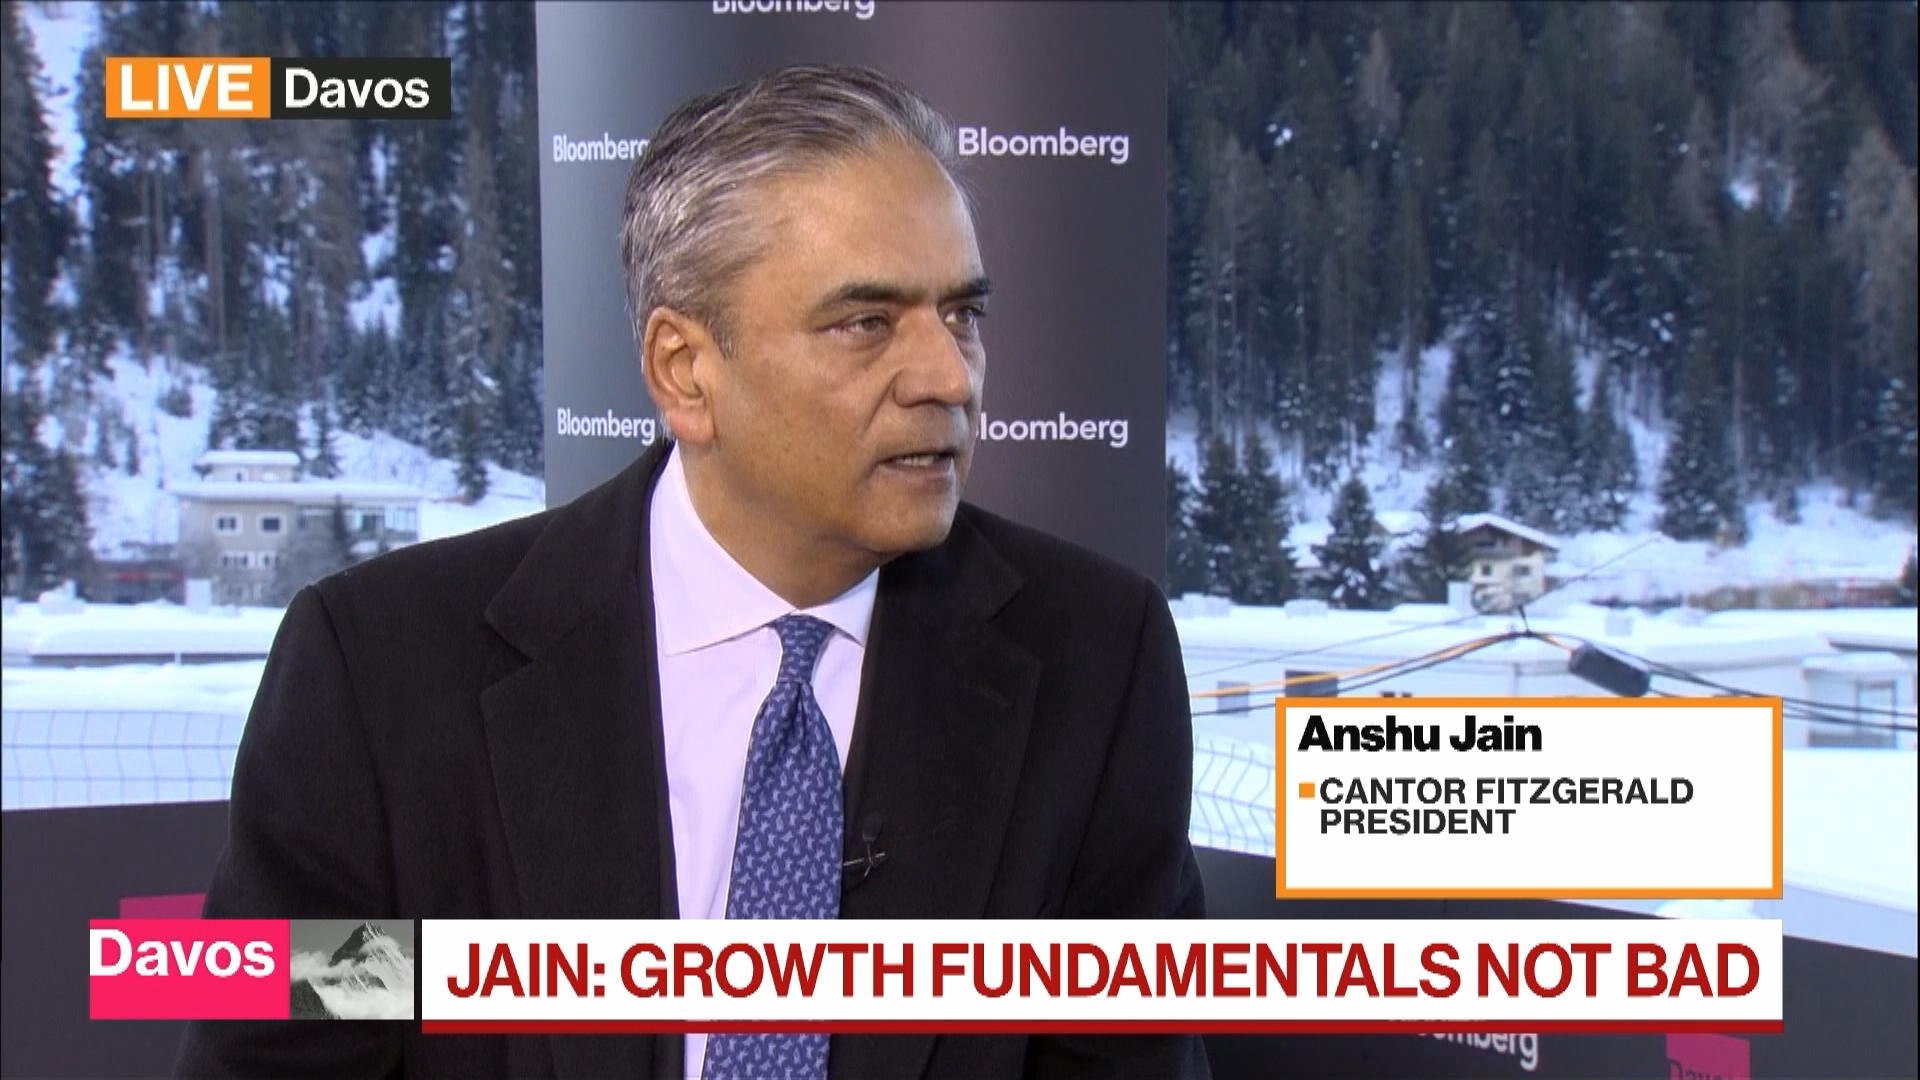 Davos: Cantor Fitzgerald President Anshu Jain Sees Stretched Credit Valuations as a Concern